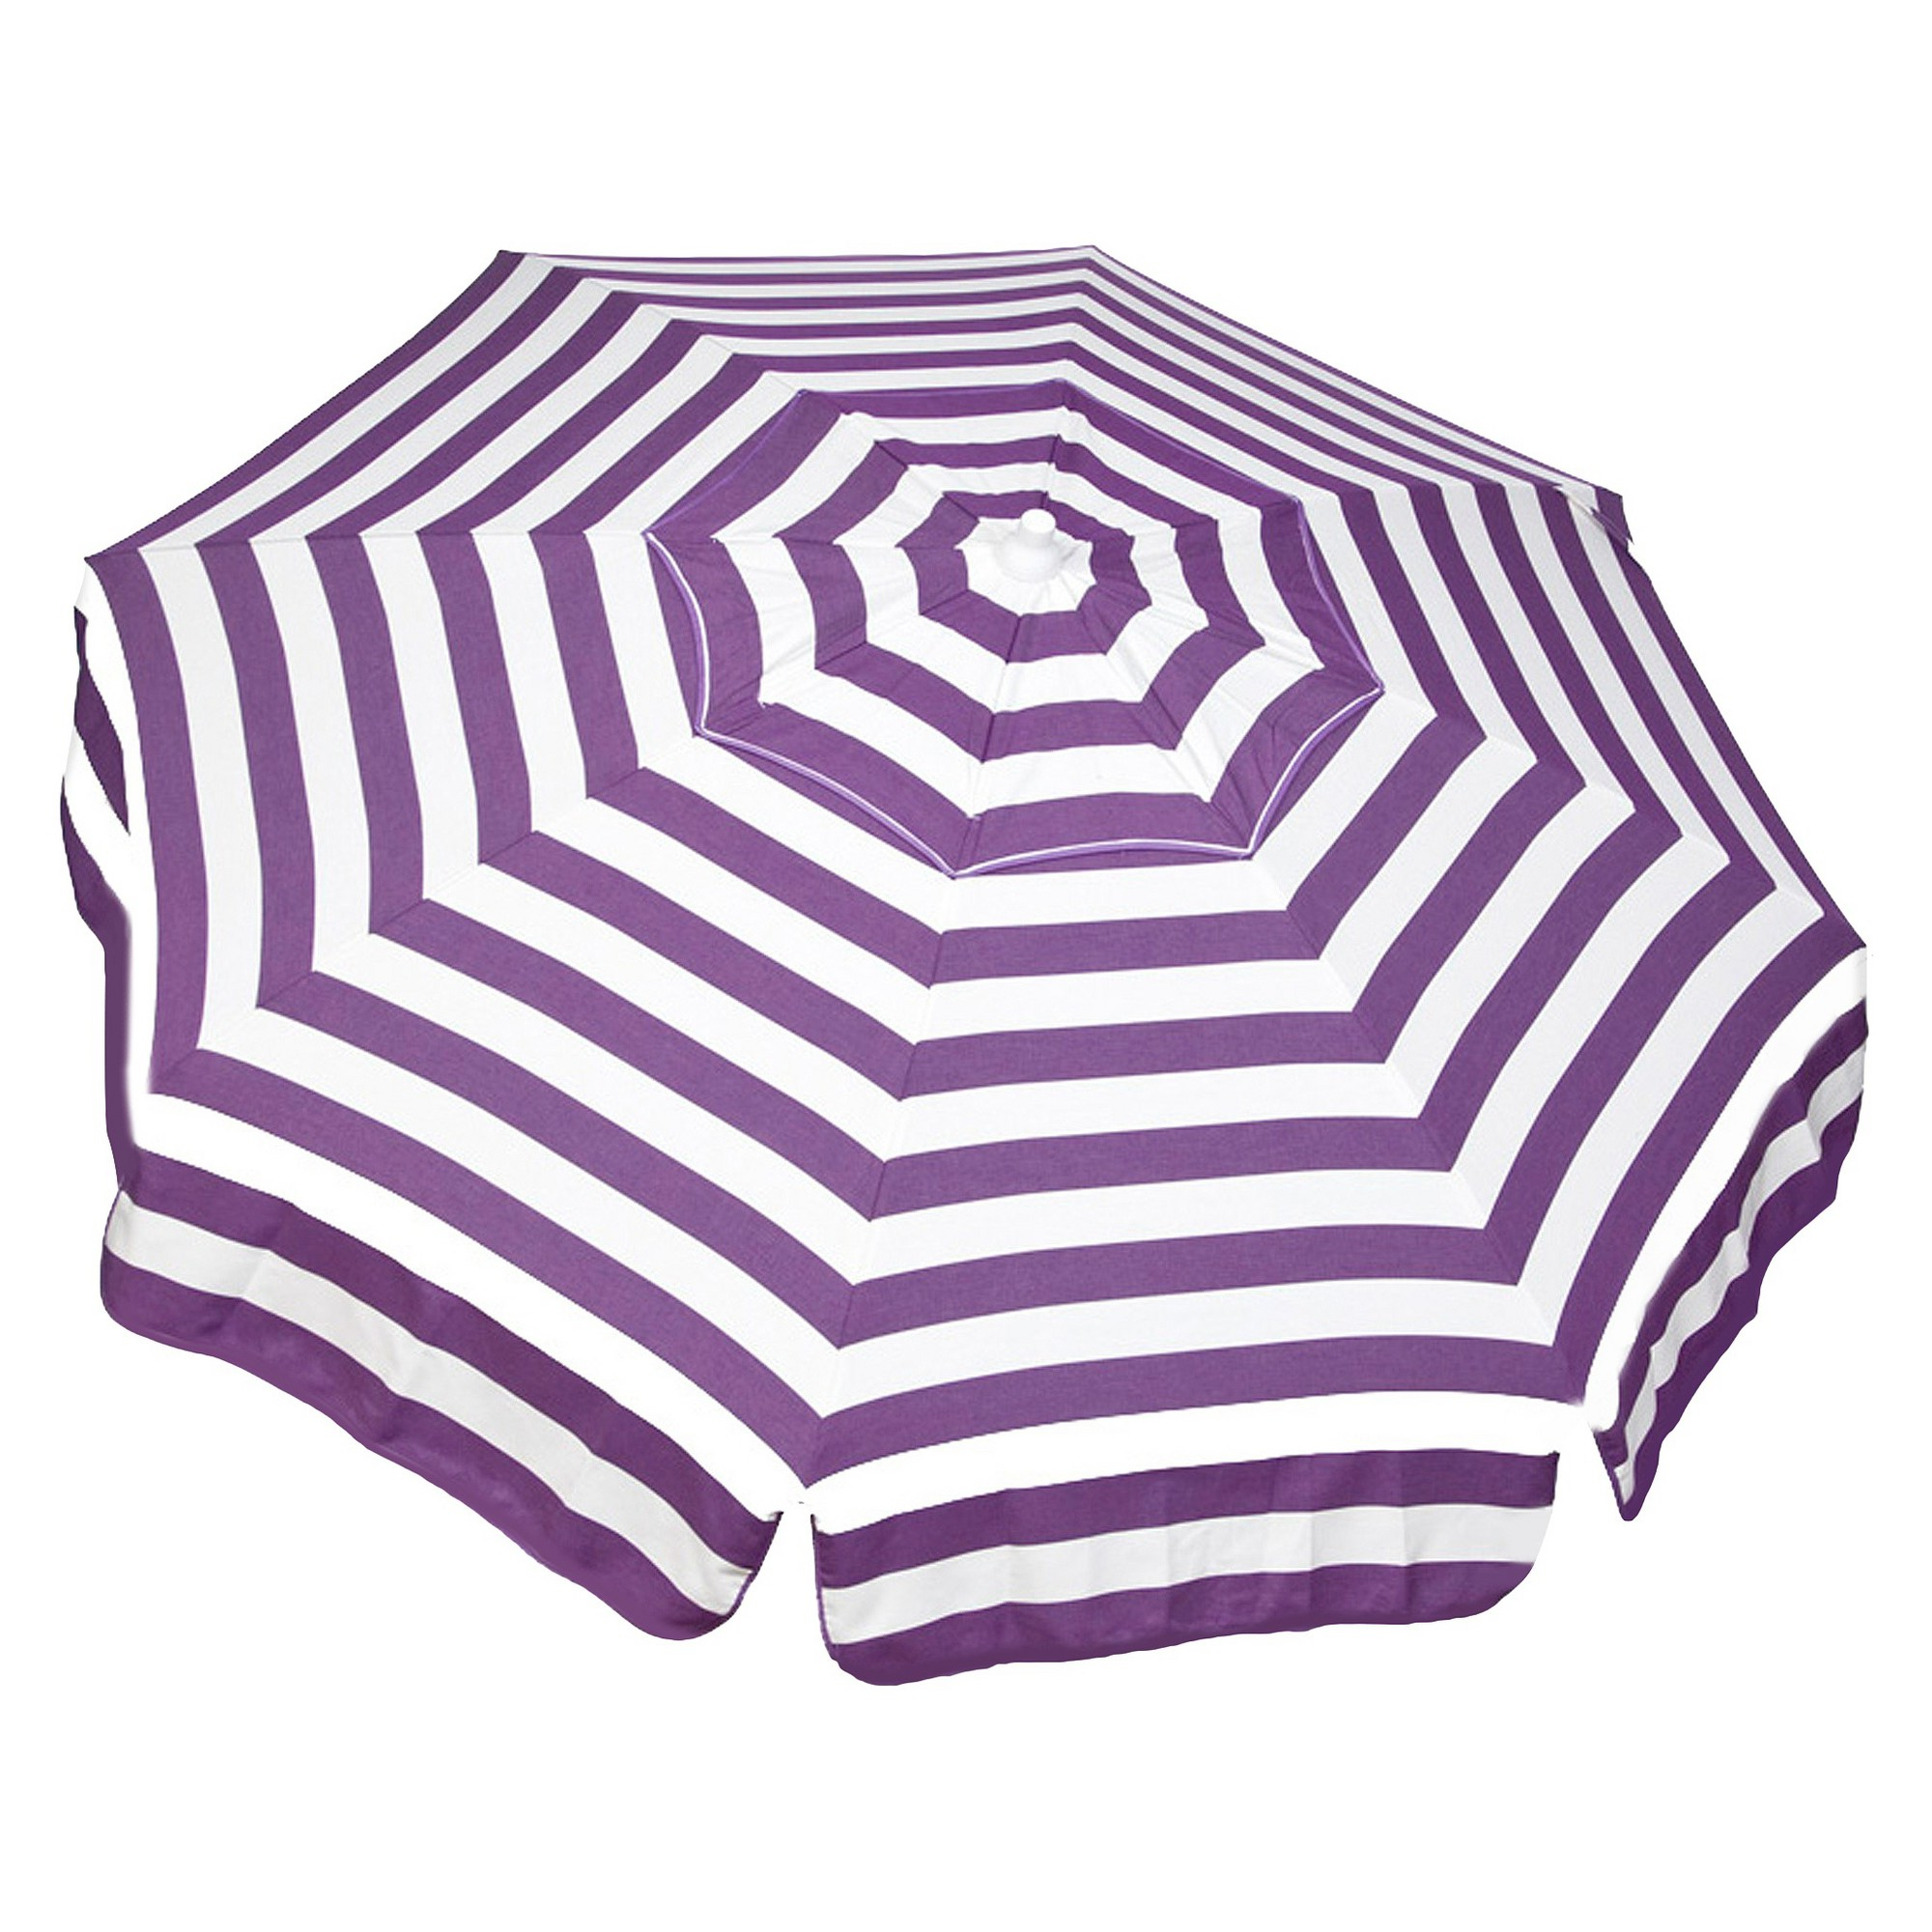 Parasol 6' Italian Aluminum Collar Tilt Beach Umbrella – Purple Within Fashionable Italian Drape Umbrellas (View 18 of 20)